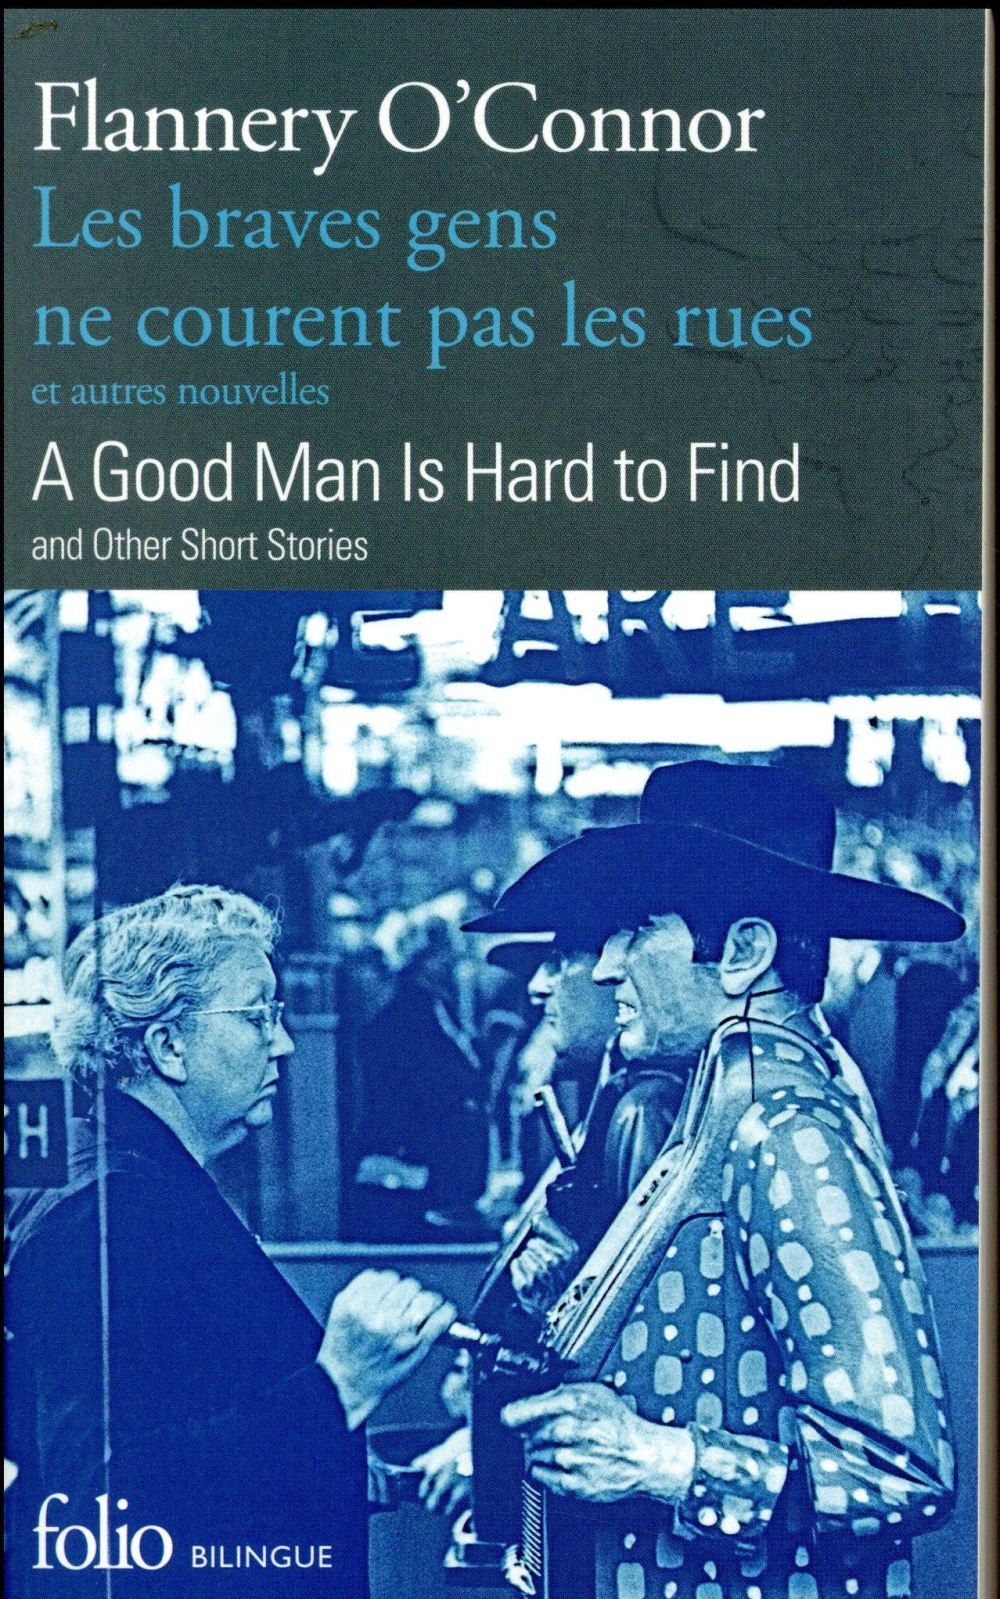 LES BRAVES GENS NE COURENT PAS LES RUES ET AUTRES NOUVELLESA GOOD MAN IS HARD TO FIND AND OTHER SHO O'CONNOR FLANNERY GALLIMARD